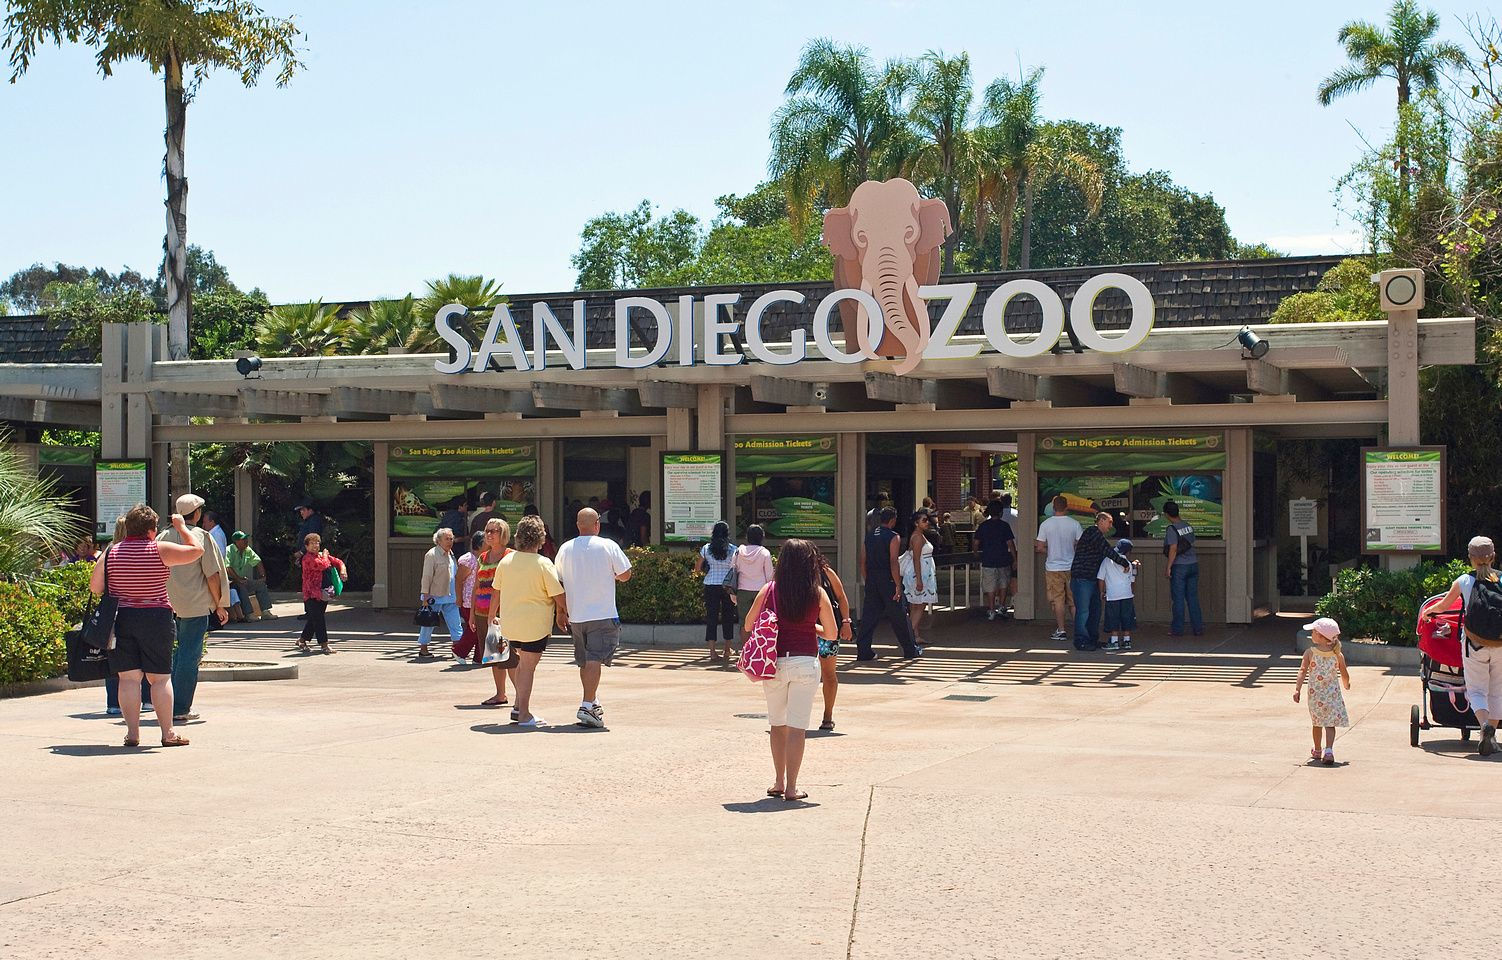 San Diego Zoo Hotel - Sheraton Mission Valley Hotel